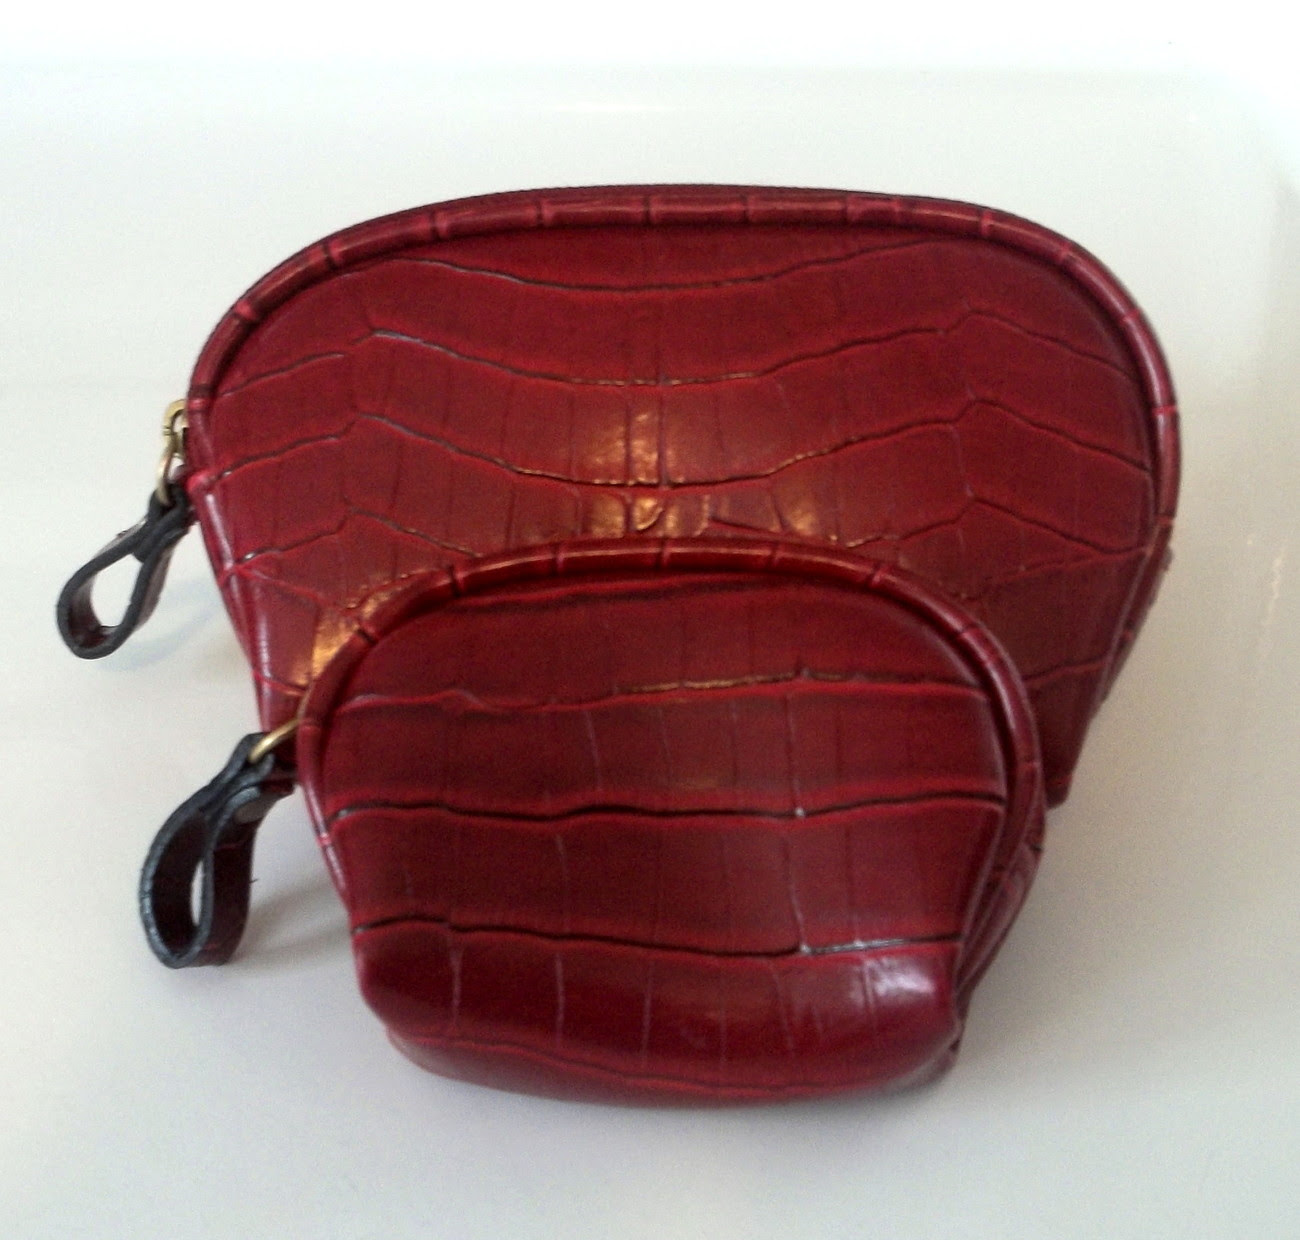 Cosmetic Bag and Coin Purse 2 Pc Set Red Crocodile Print Red